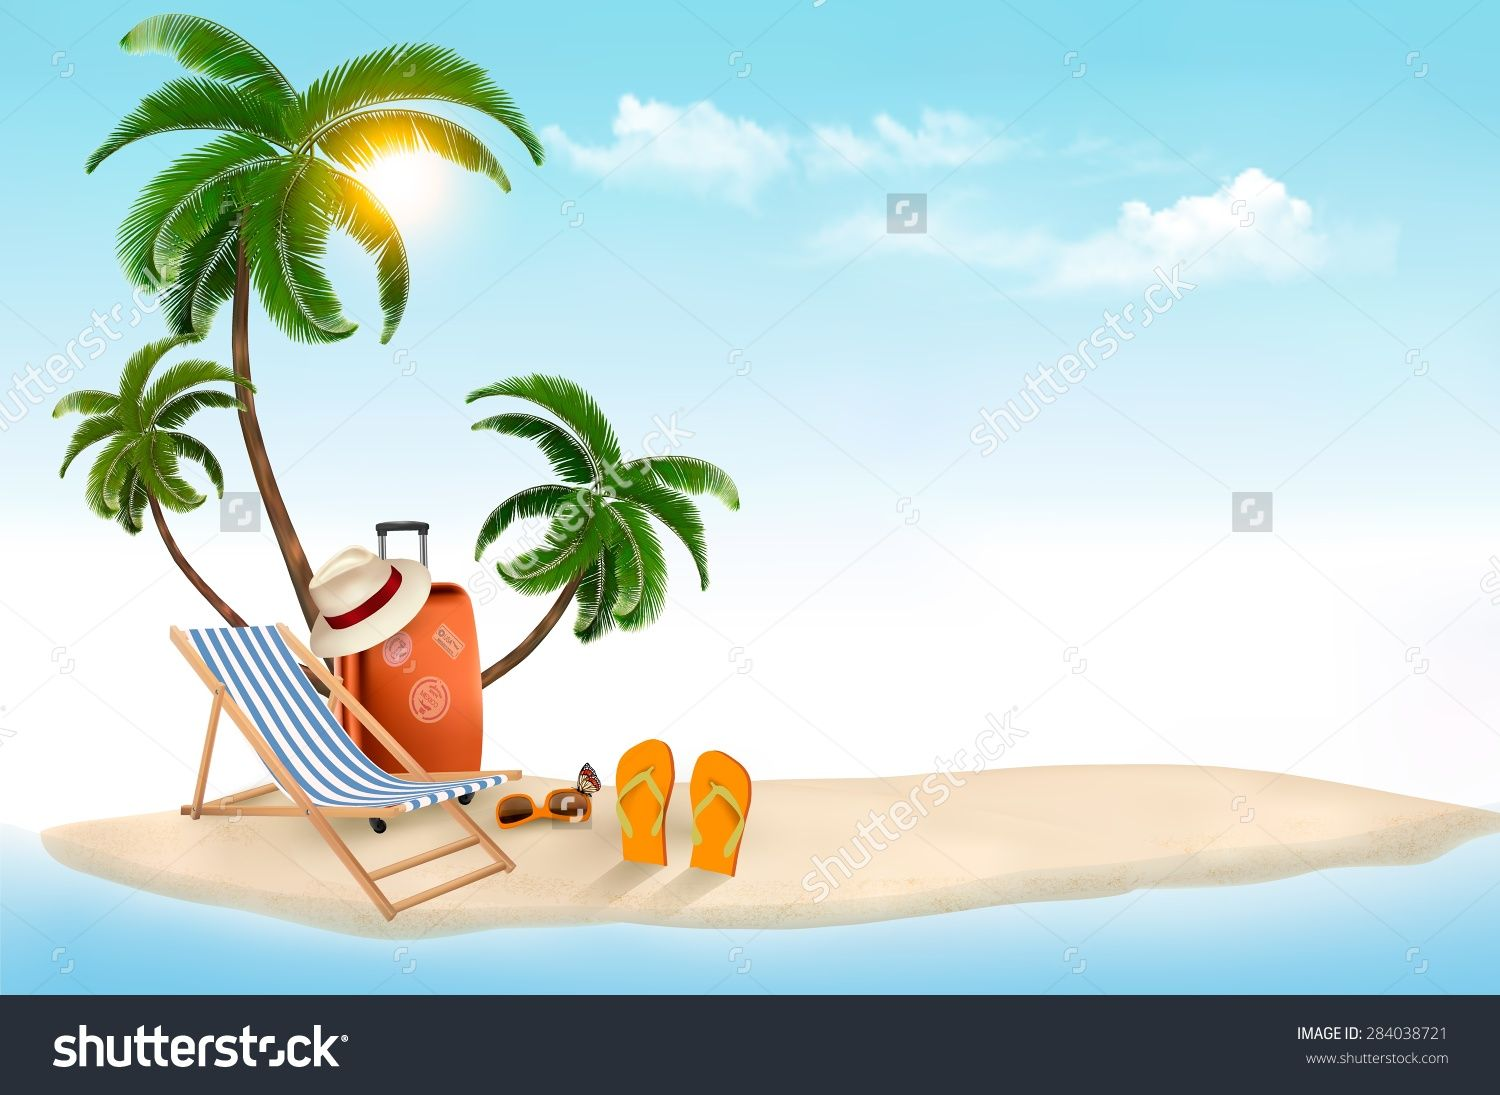 Beach chair umbrella palm tree christmas clipart svg transparent download tropical island palms, a beach chair a suitcase clipart | Nautical ... svg transparent download